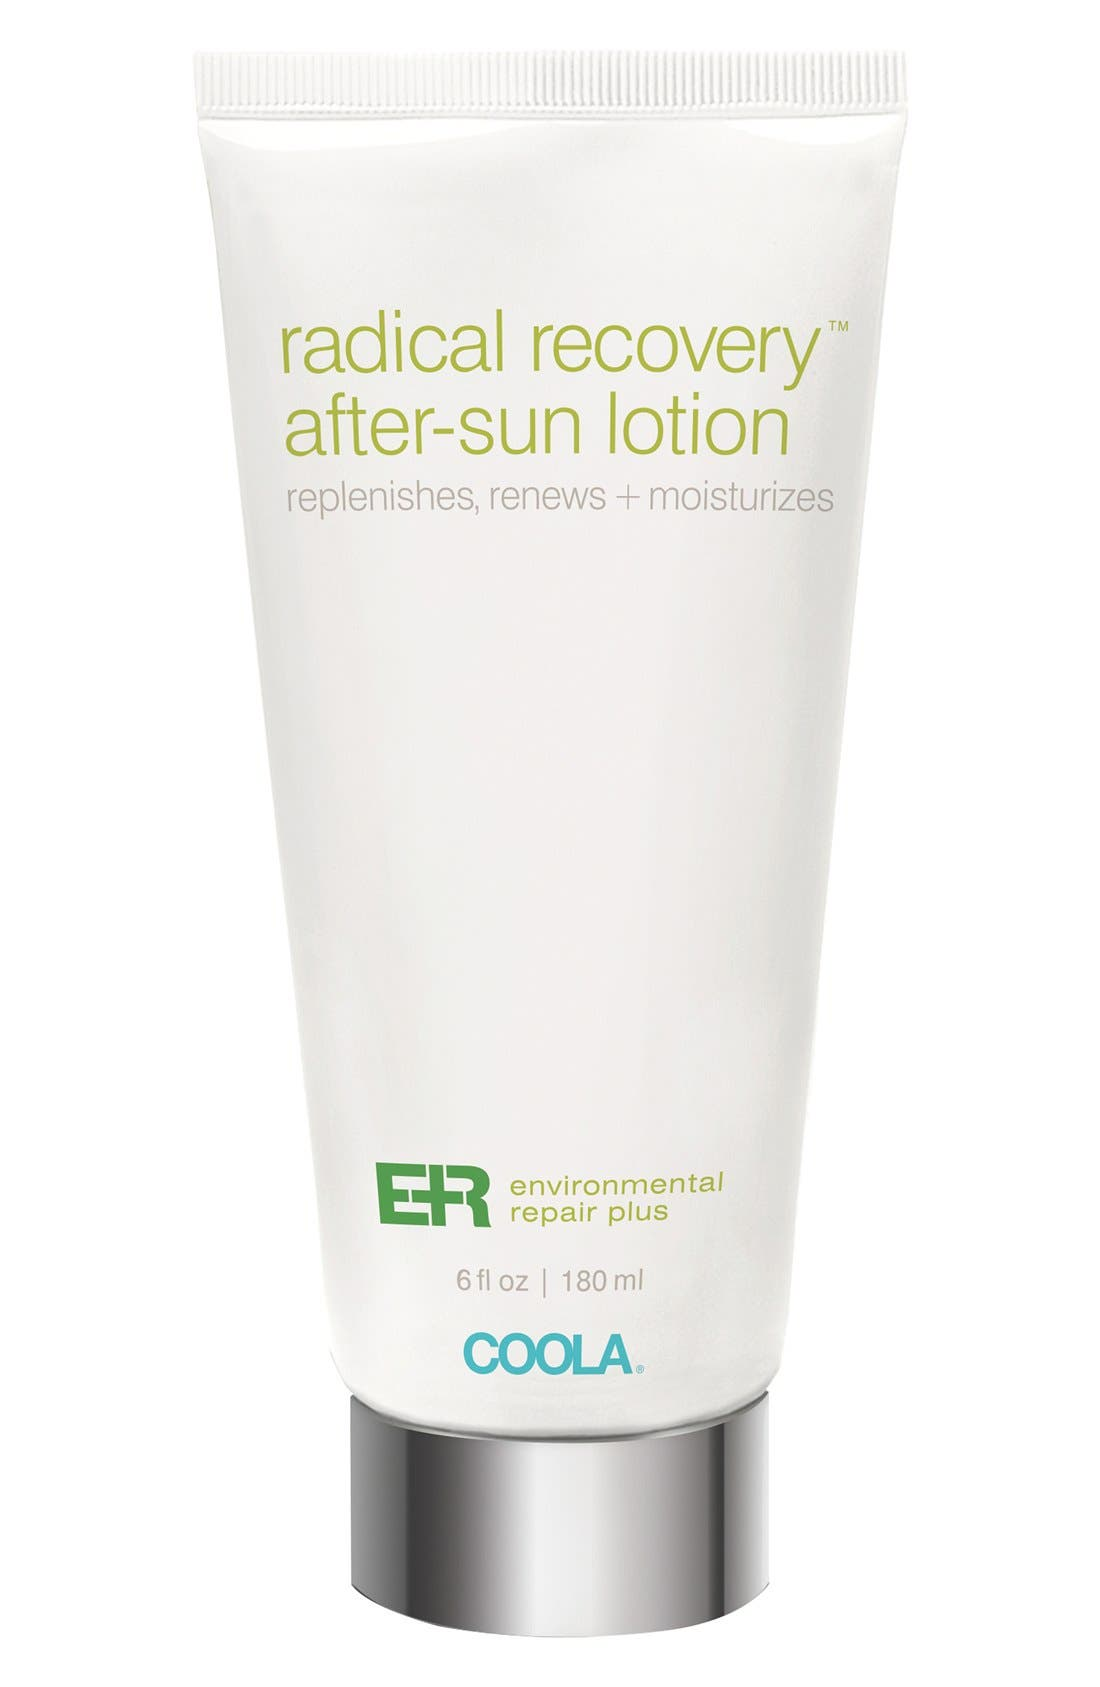 COOLA® Suncare Environmental Repair Plus® Radical Recovery™ After-Sun Lotion